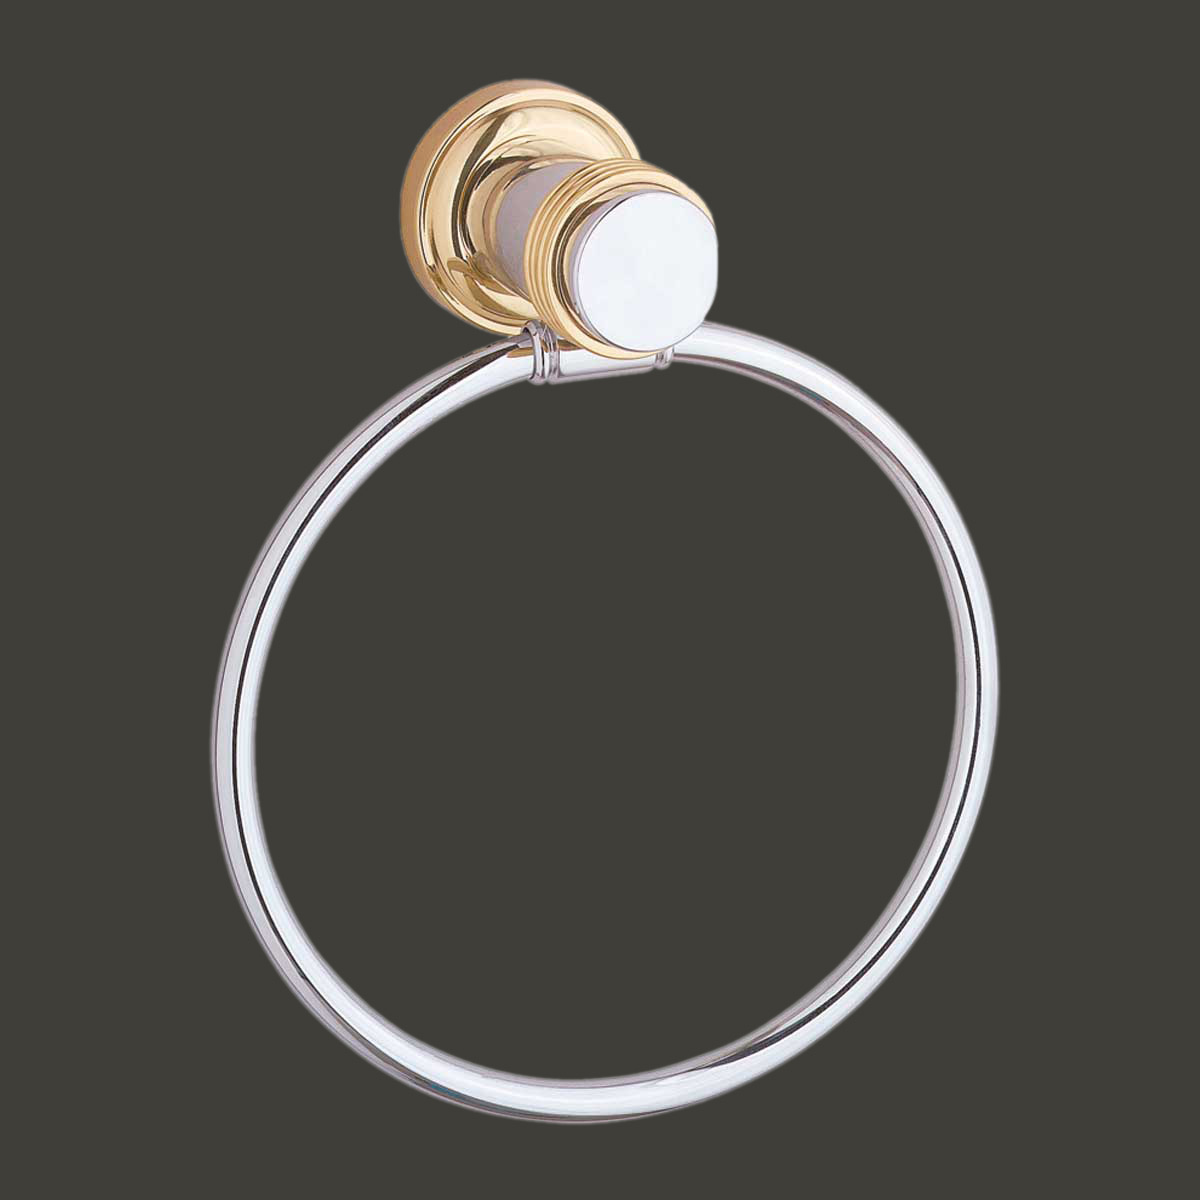 Chrome And Brass Towel Ring For Bathroom Spectrum Collection